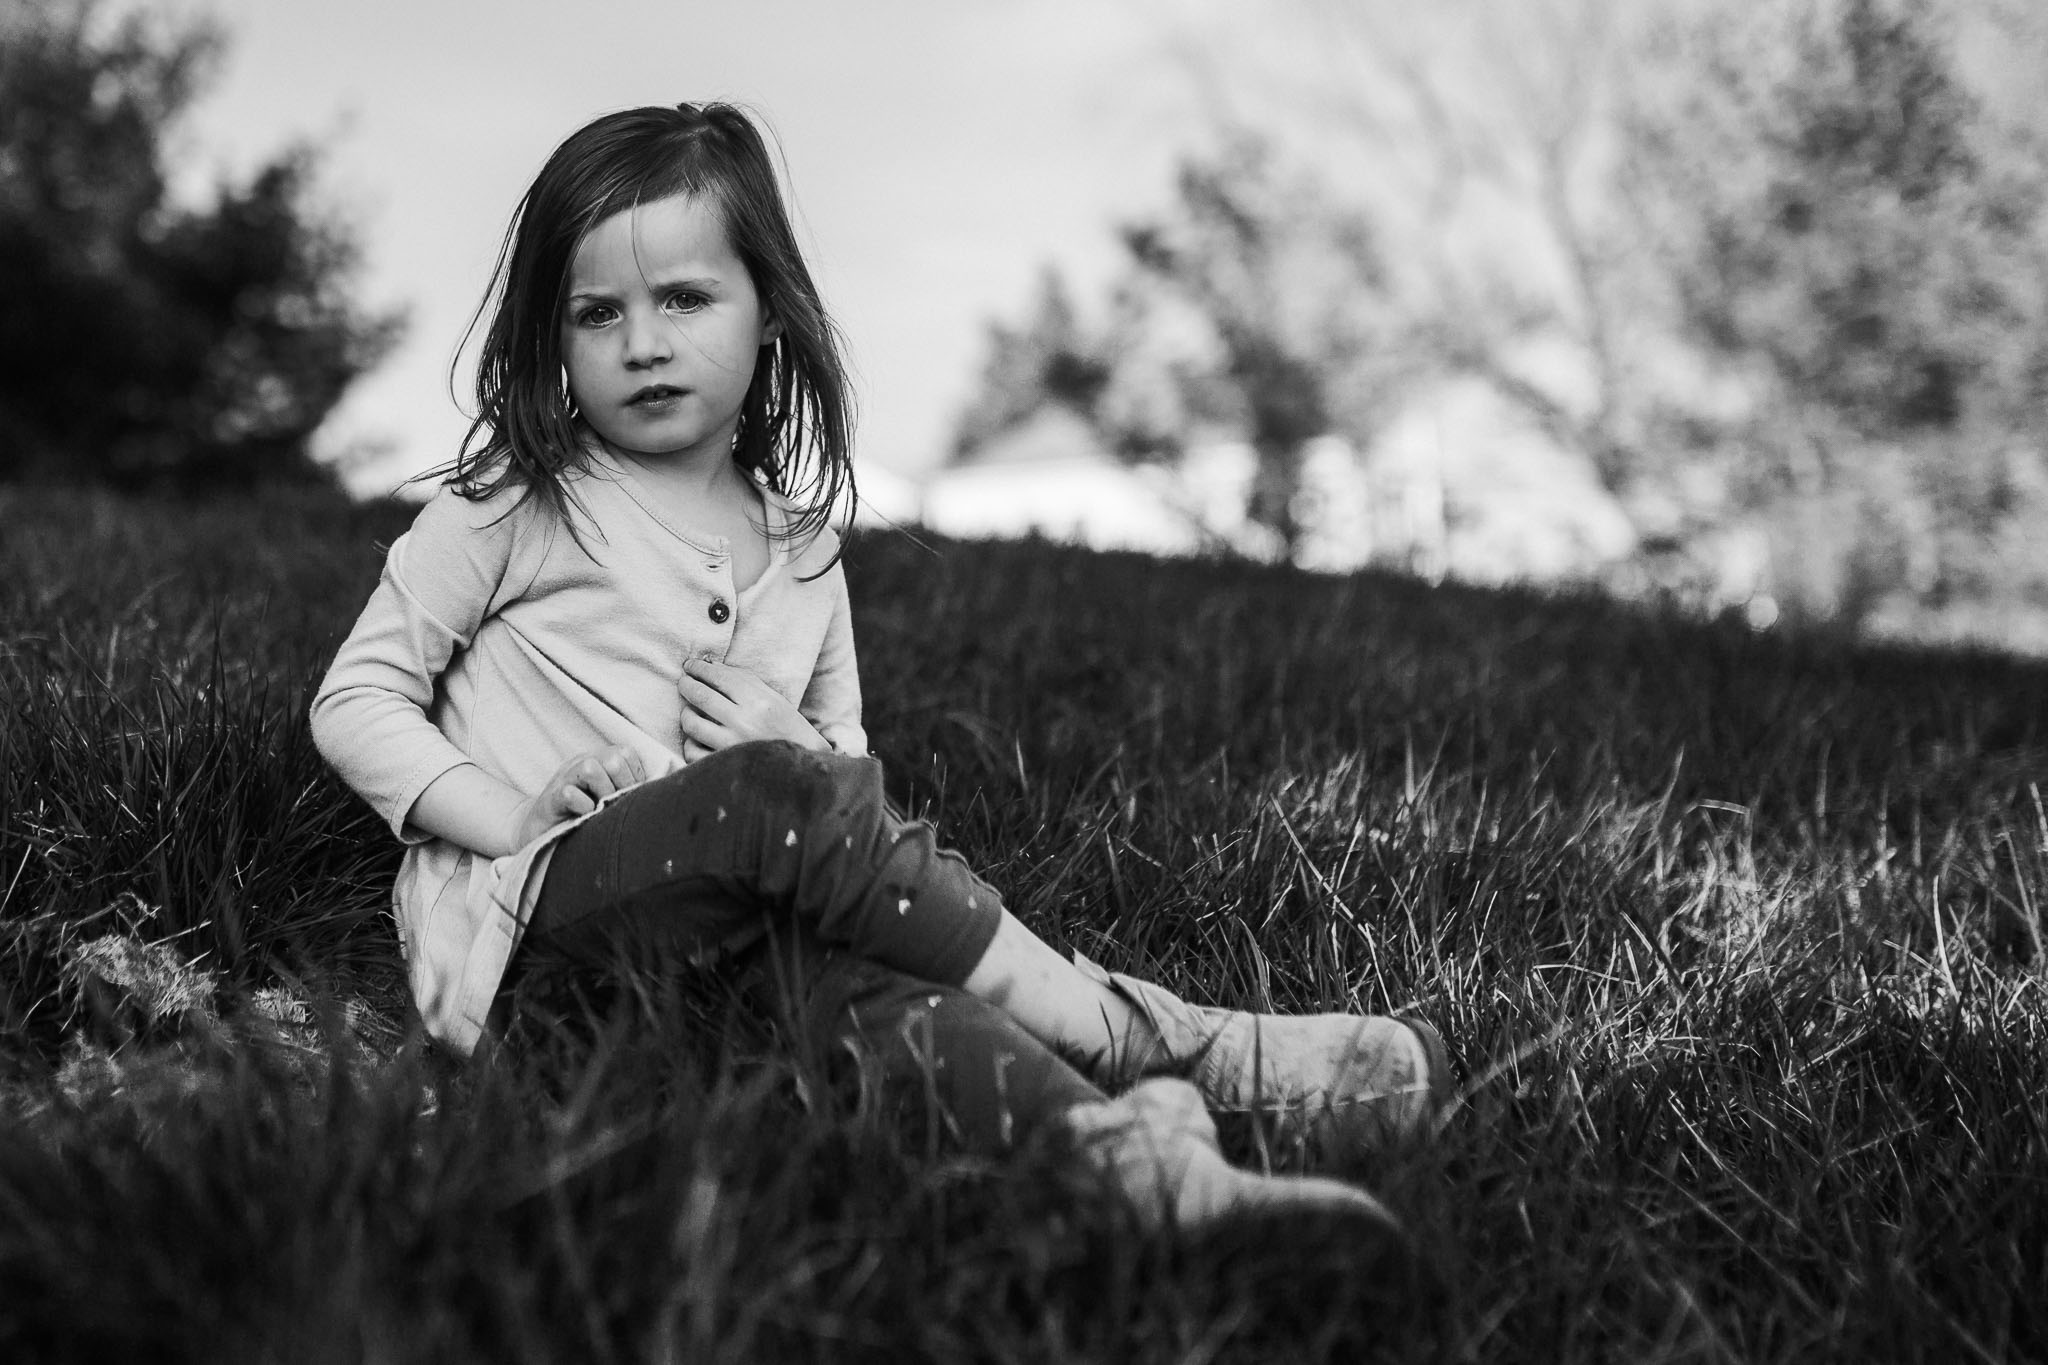 Black and white portrait of a girl sitting in a grassy field